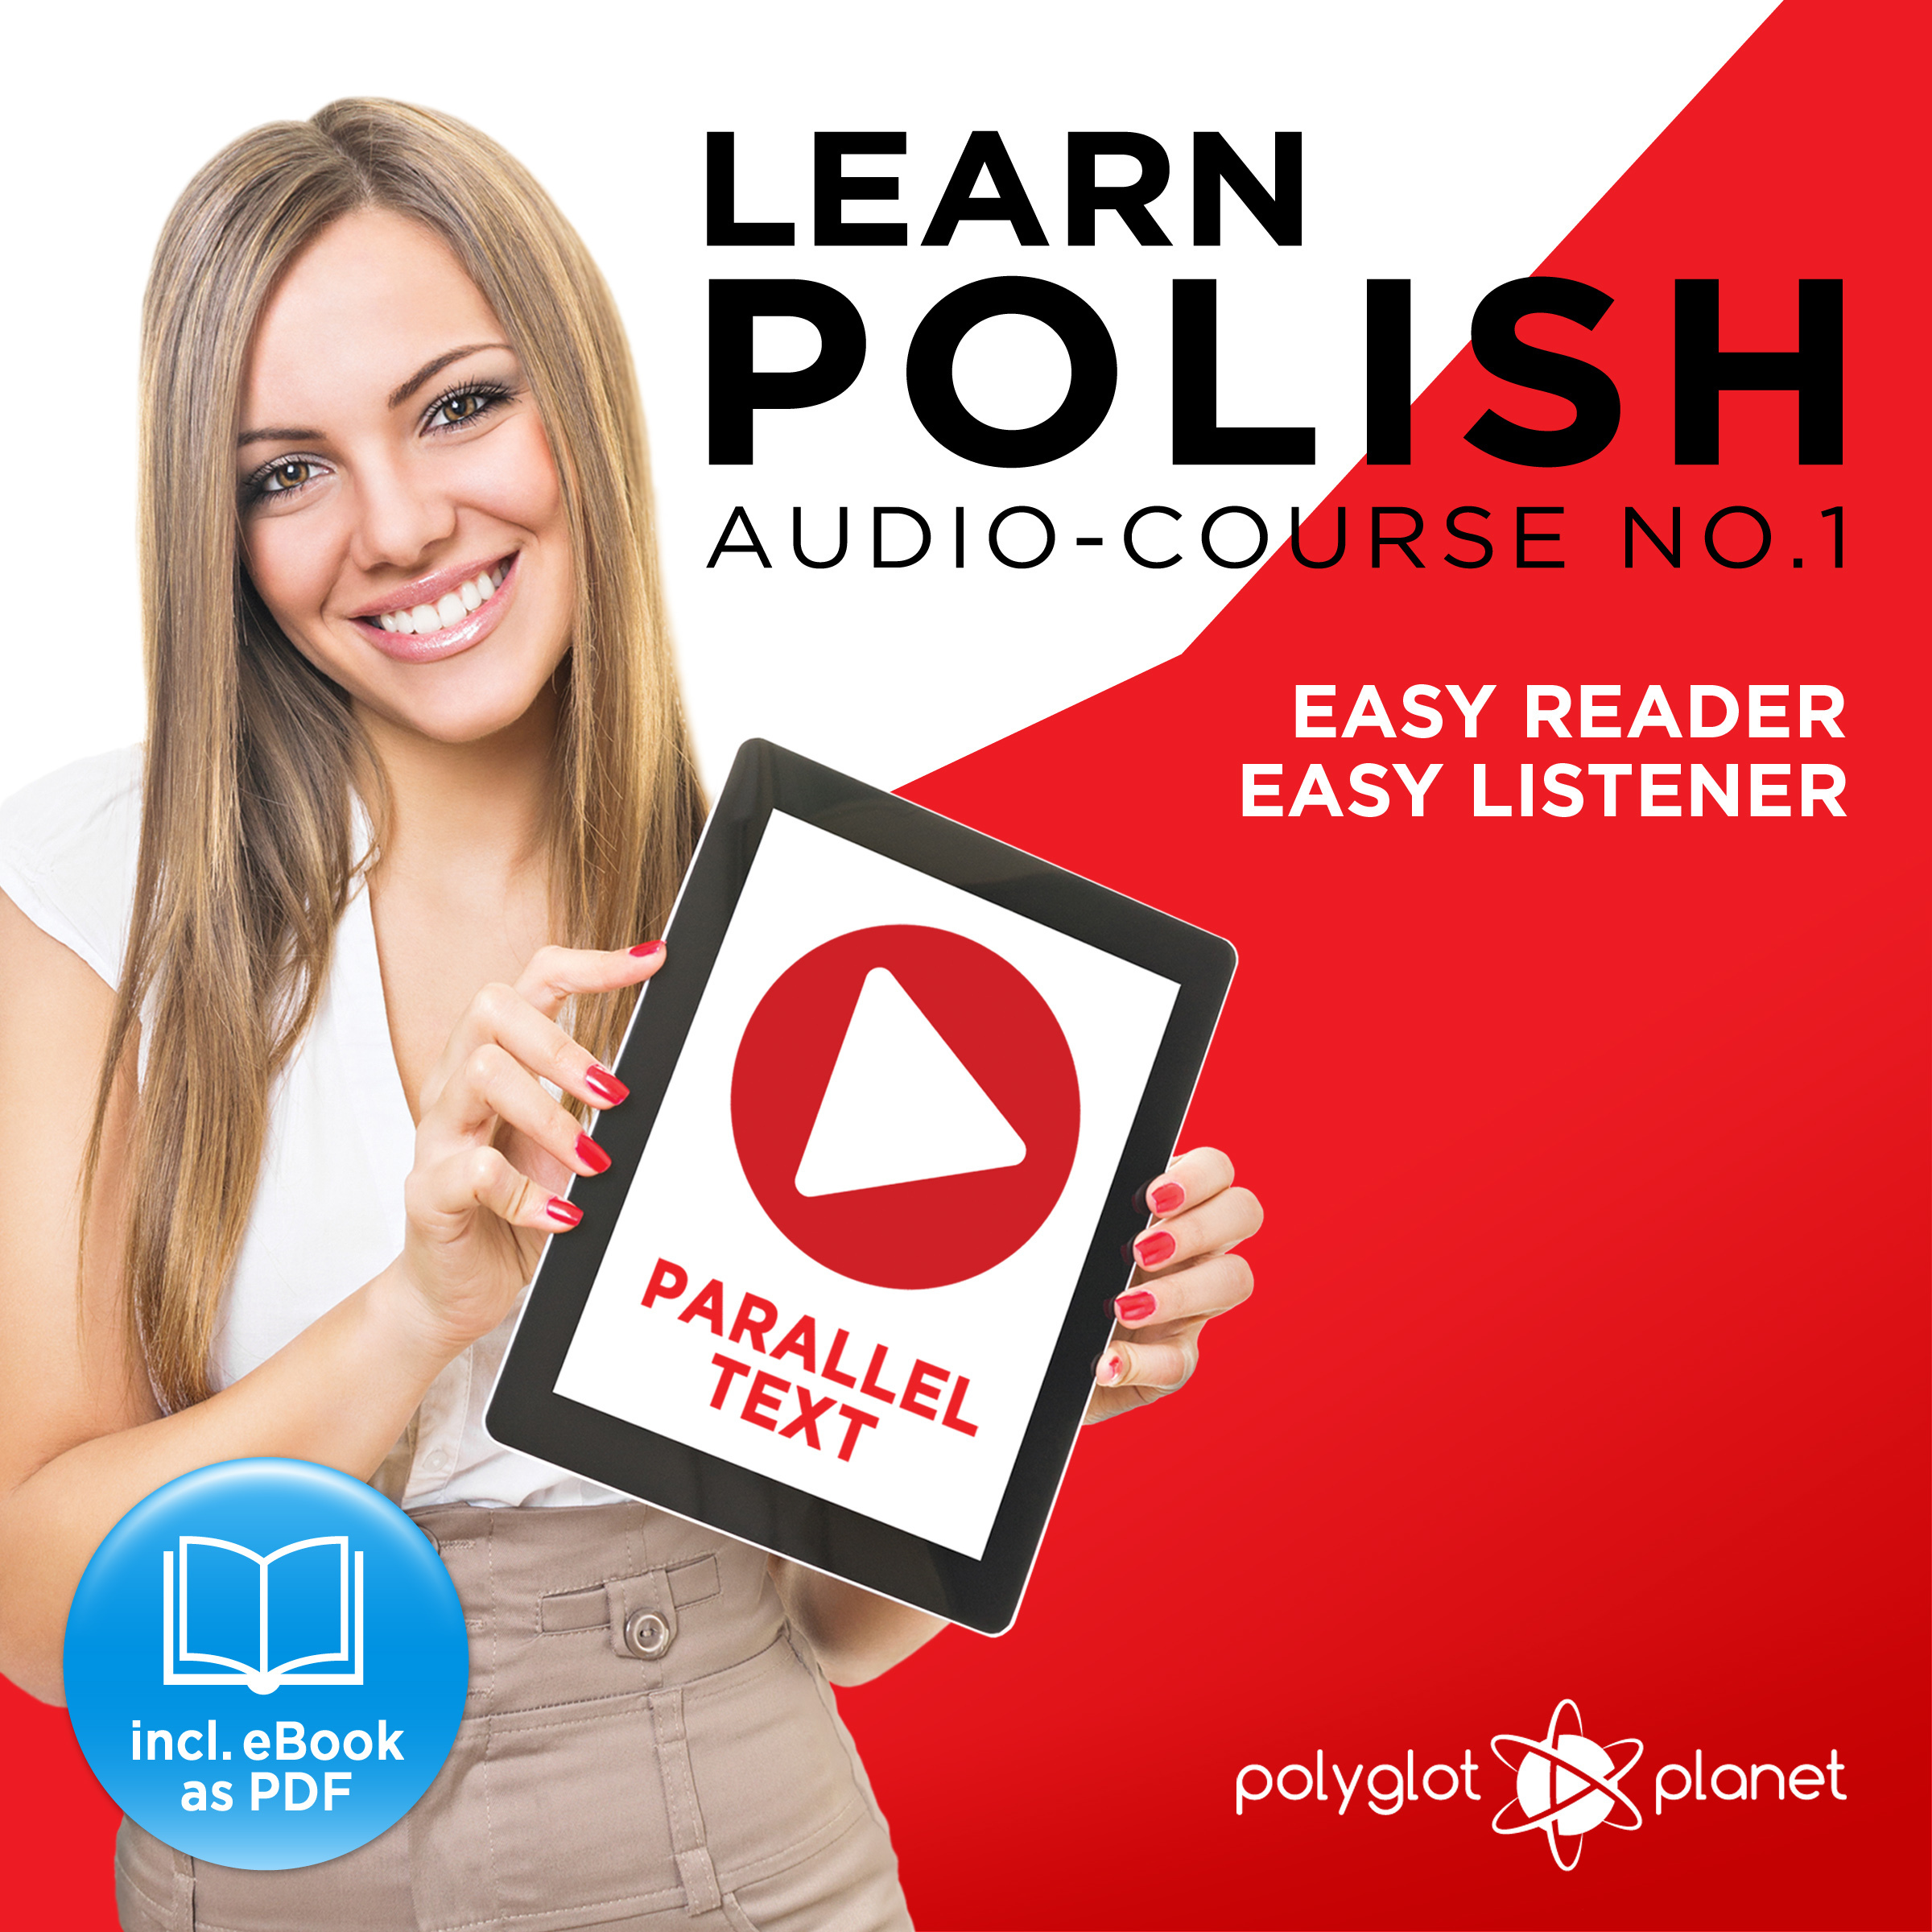 Printable Learn Polish - Easy Reader - Easy Listener - Parallel Text - Polish Audio Course No. 1 - The Polish Easy Reader - Easy Audio Learning Course Audiobook Cover Art